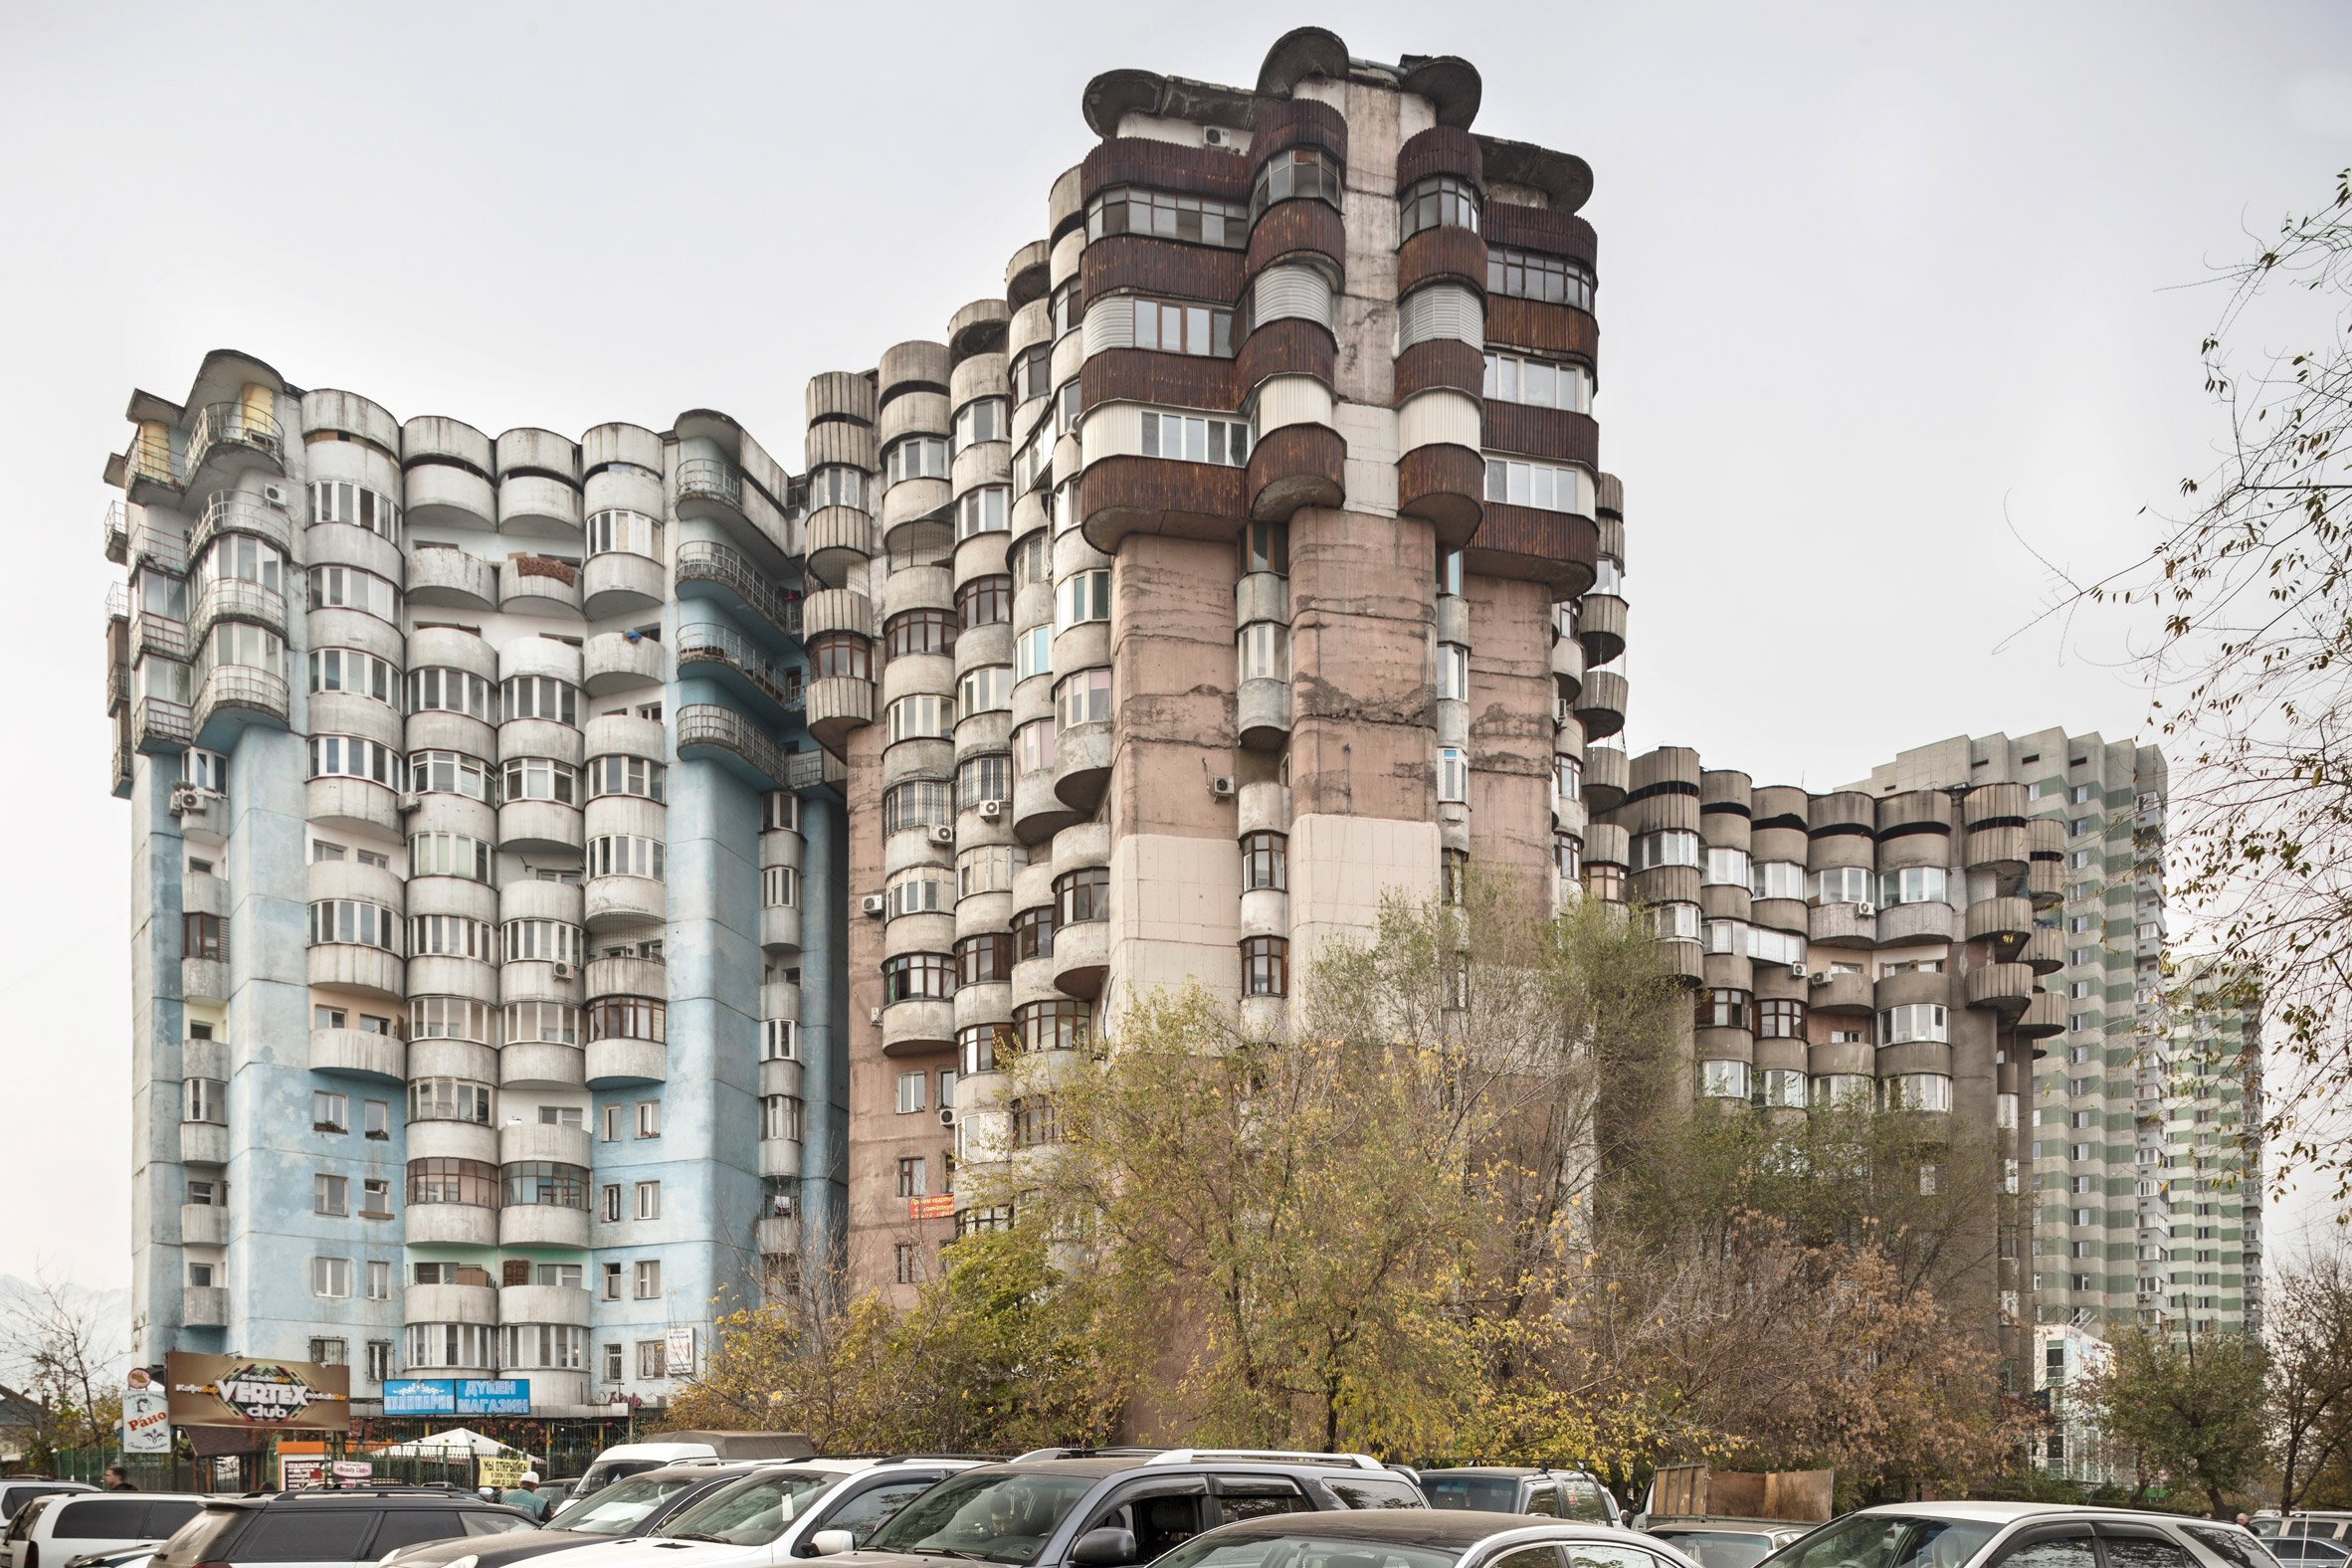 Soviet modernism combines brutalism and Eastern influences